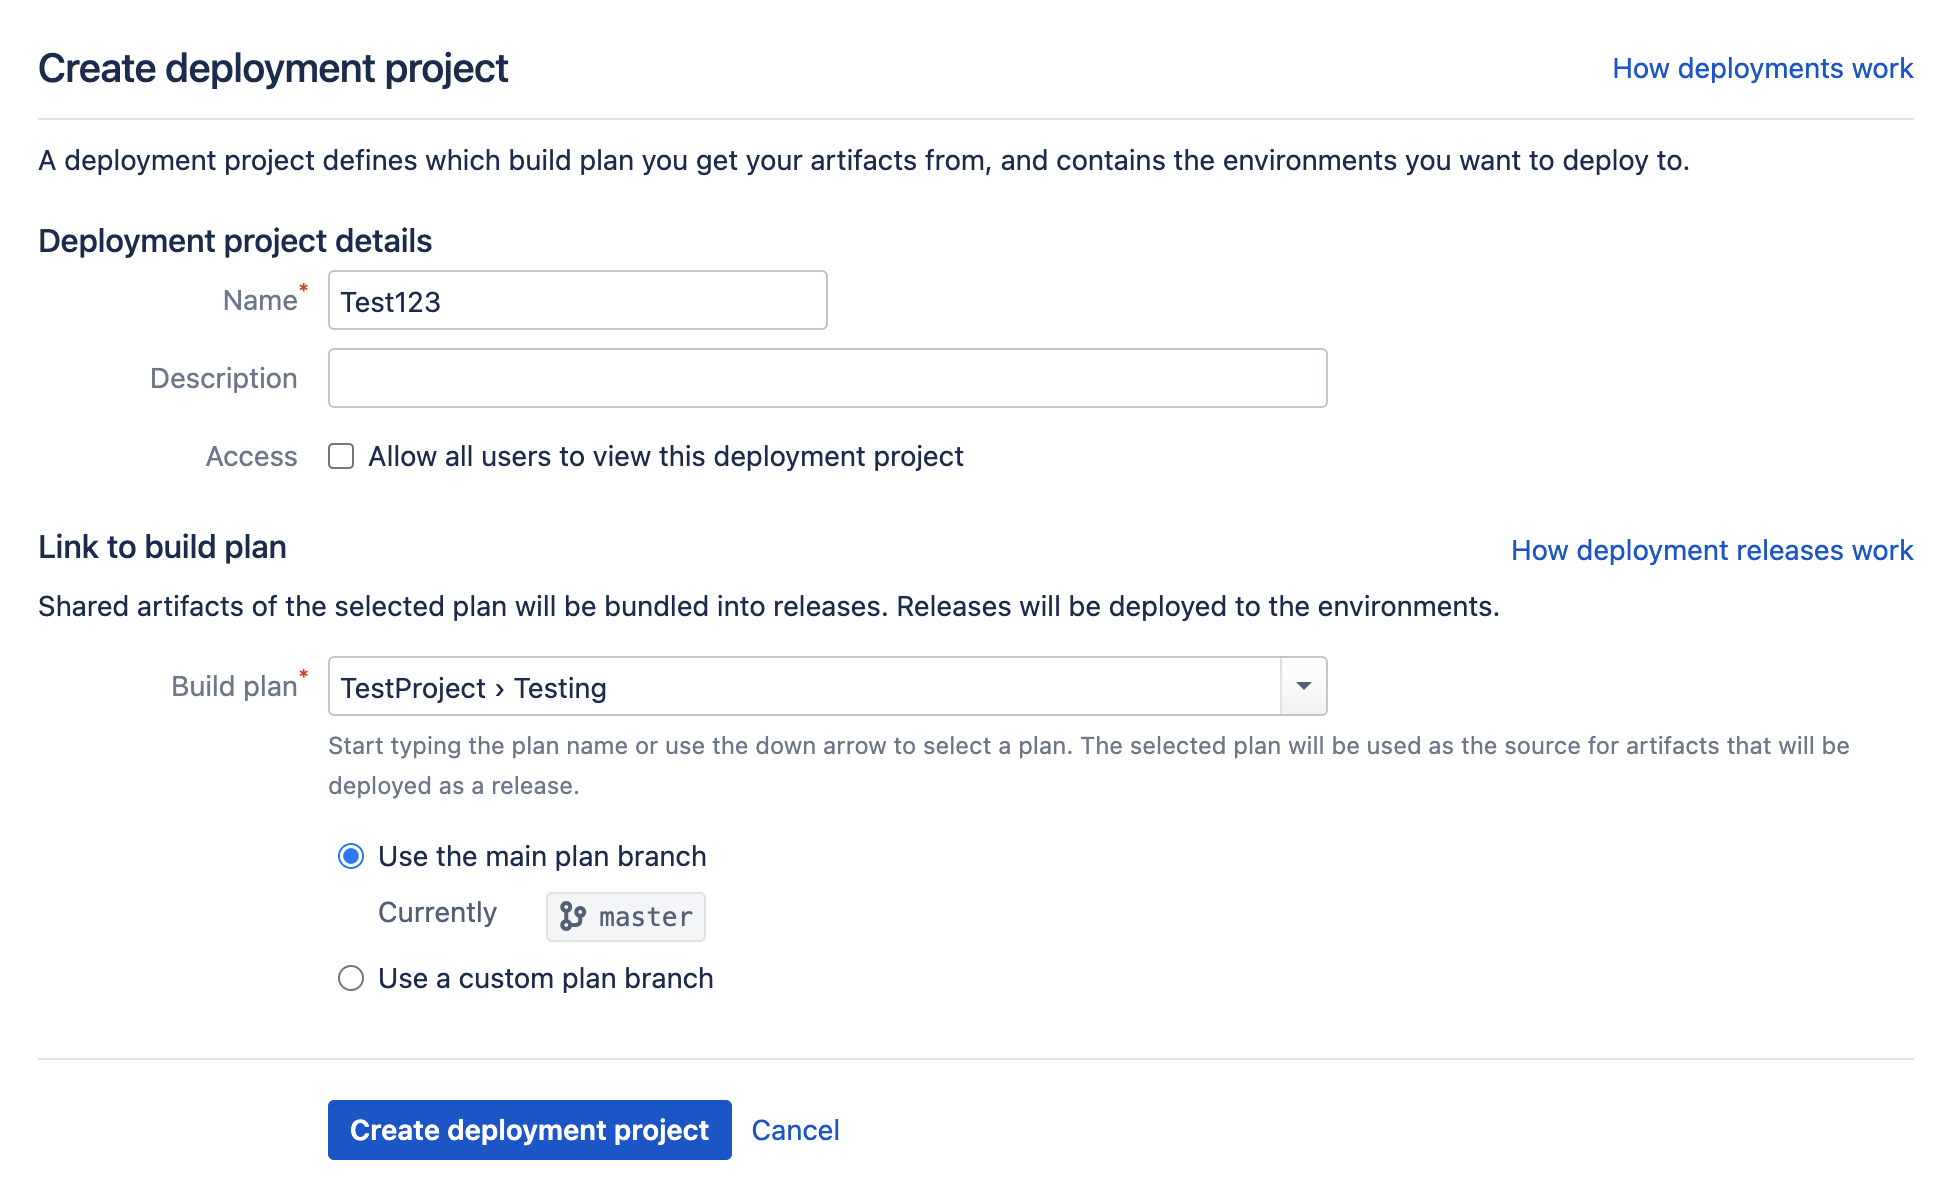 Create deployment project screen